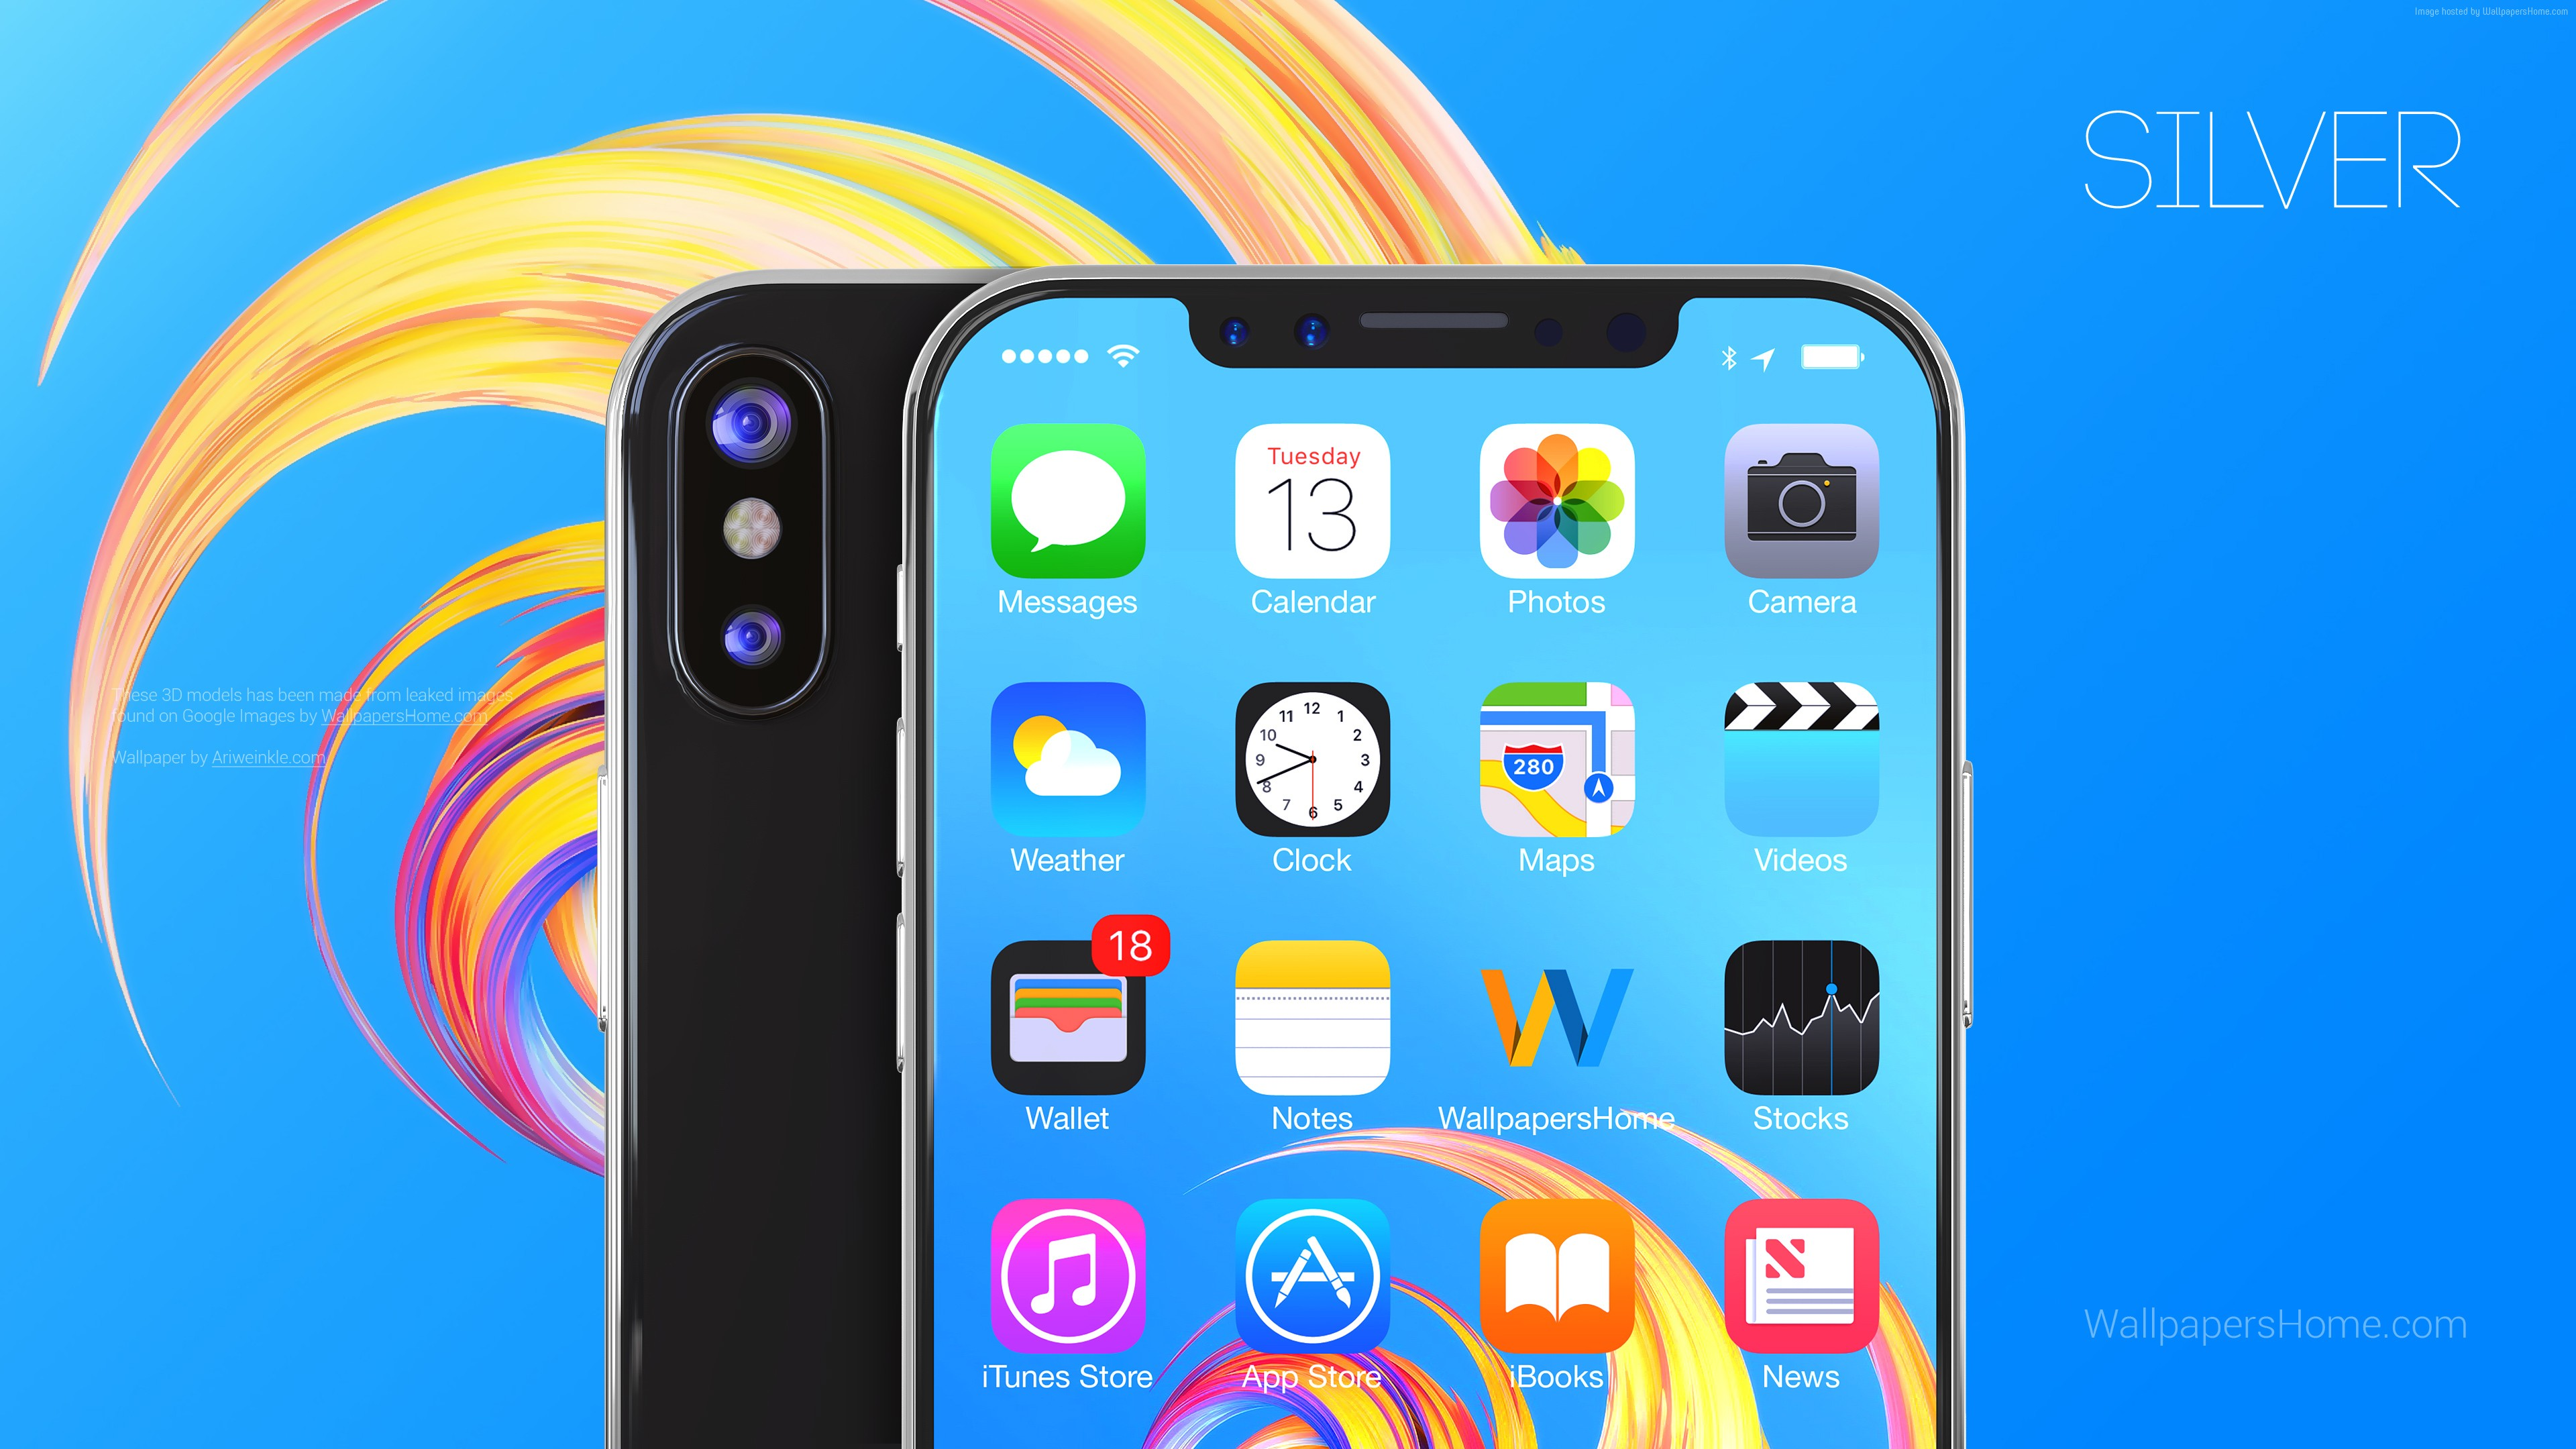 Wallpaper IPhone X, Silver, 3D, Leaked, WWDC 2017, 4k, Hi